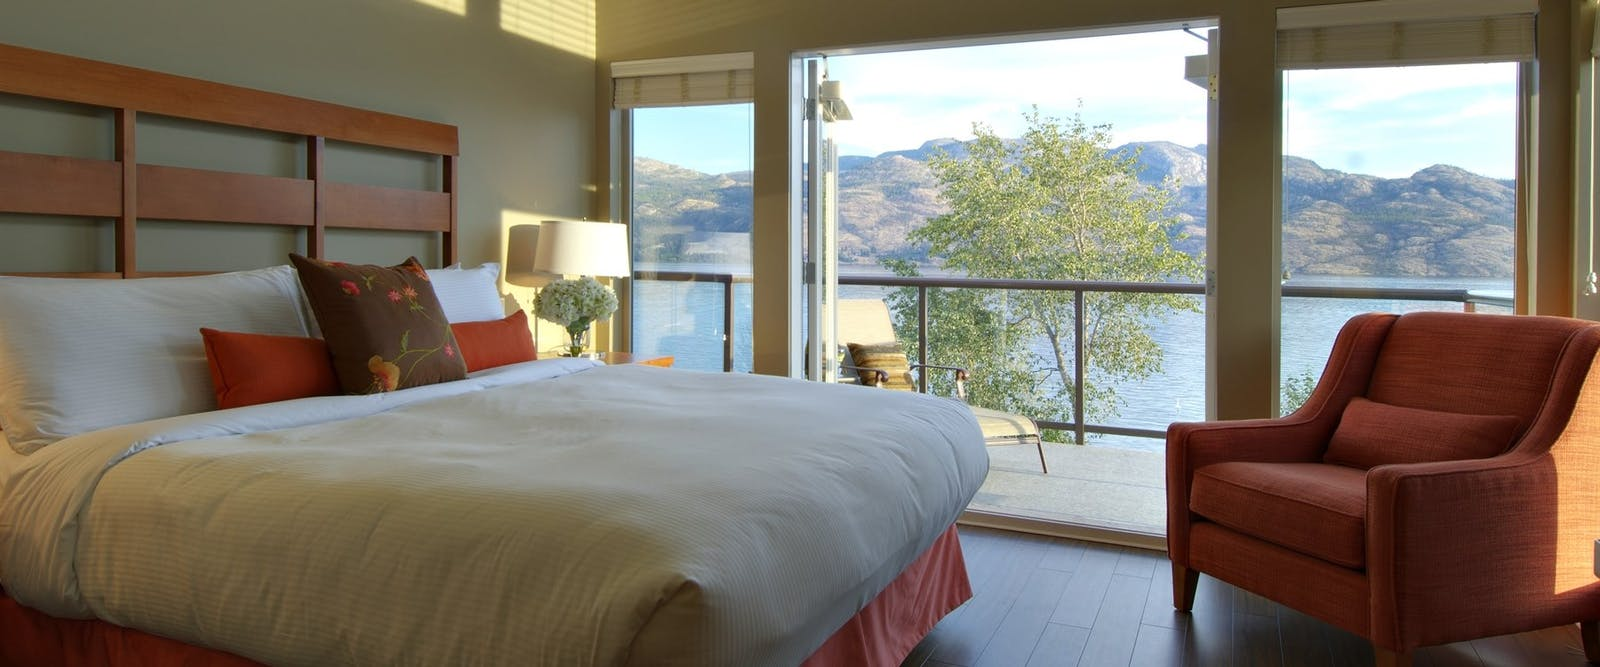 Bedroom overlooking the lake at Cove Lakeside Resort